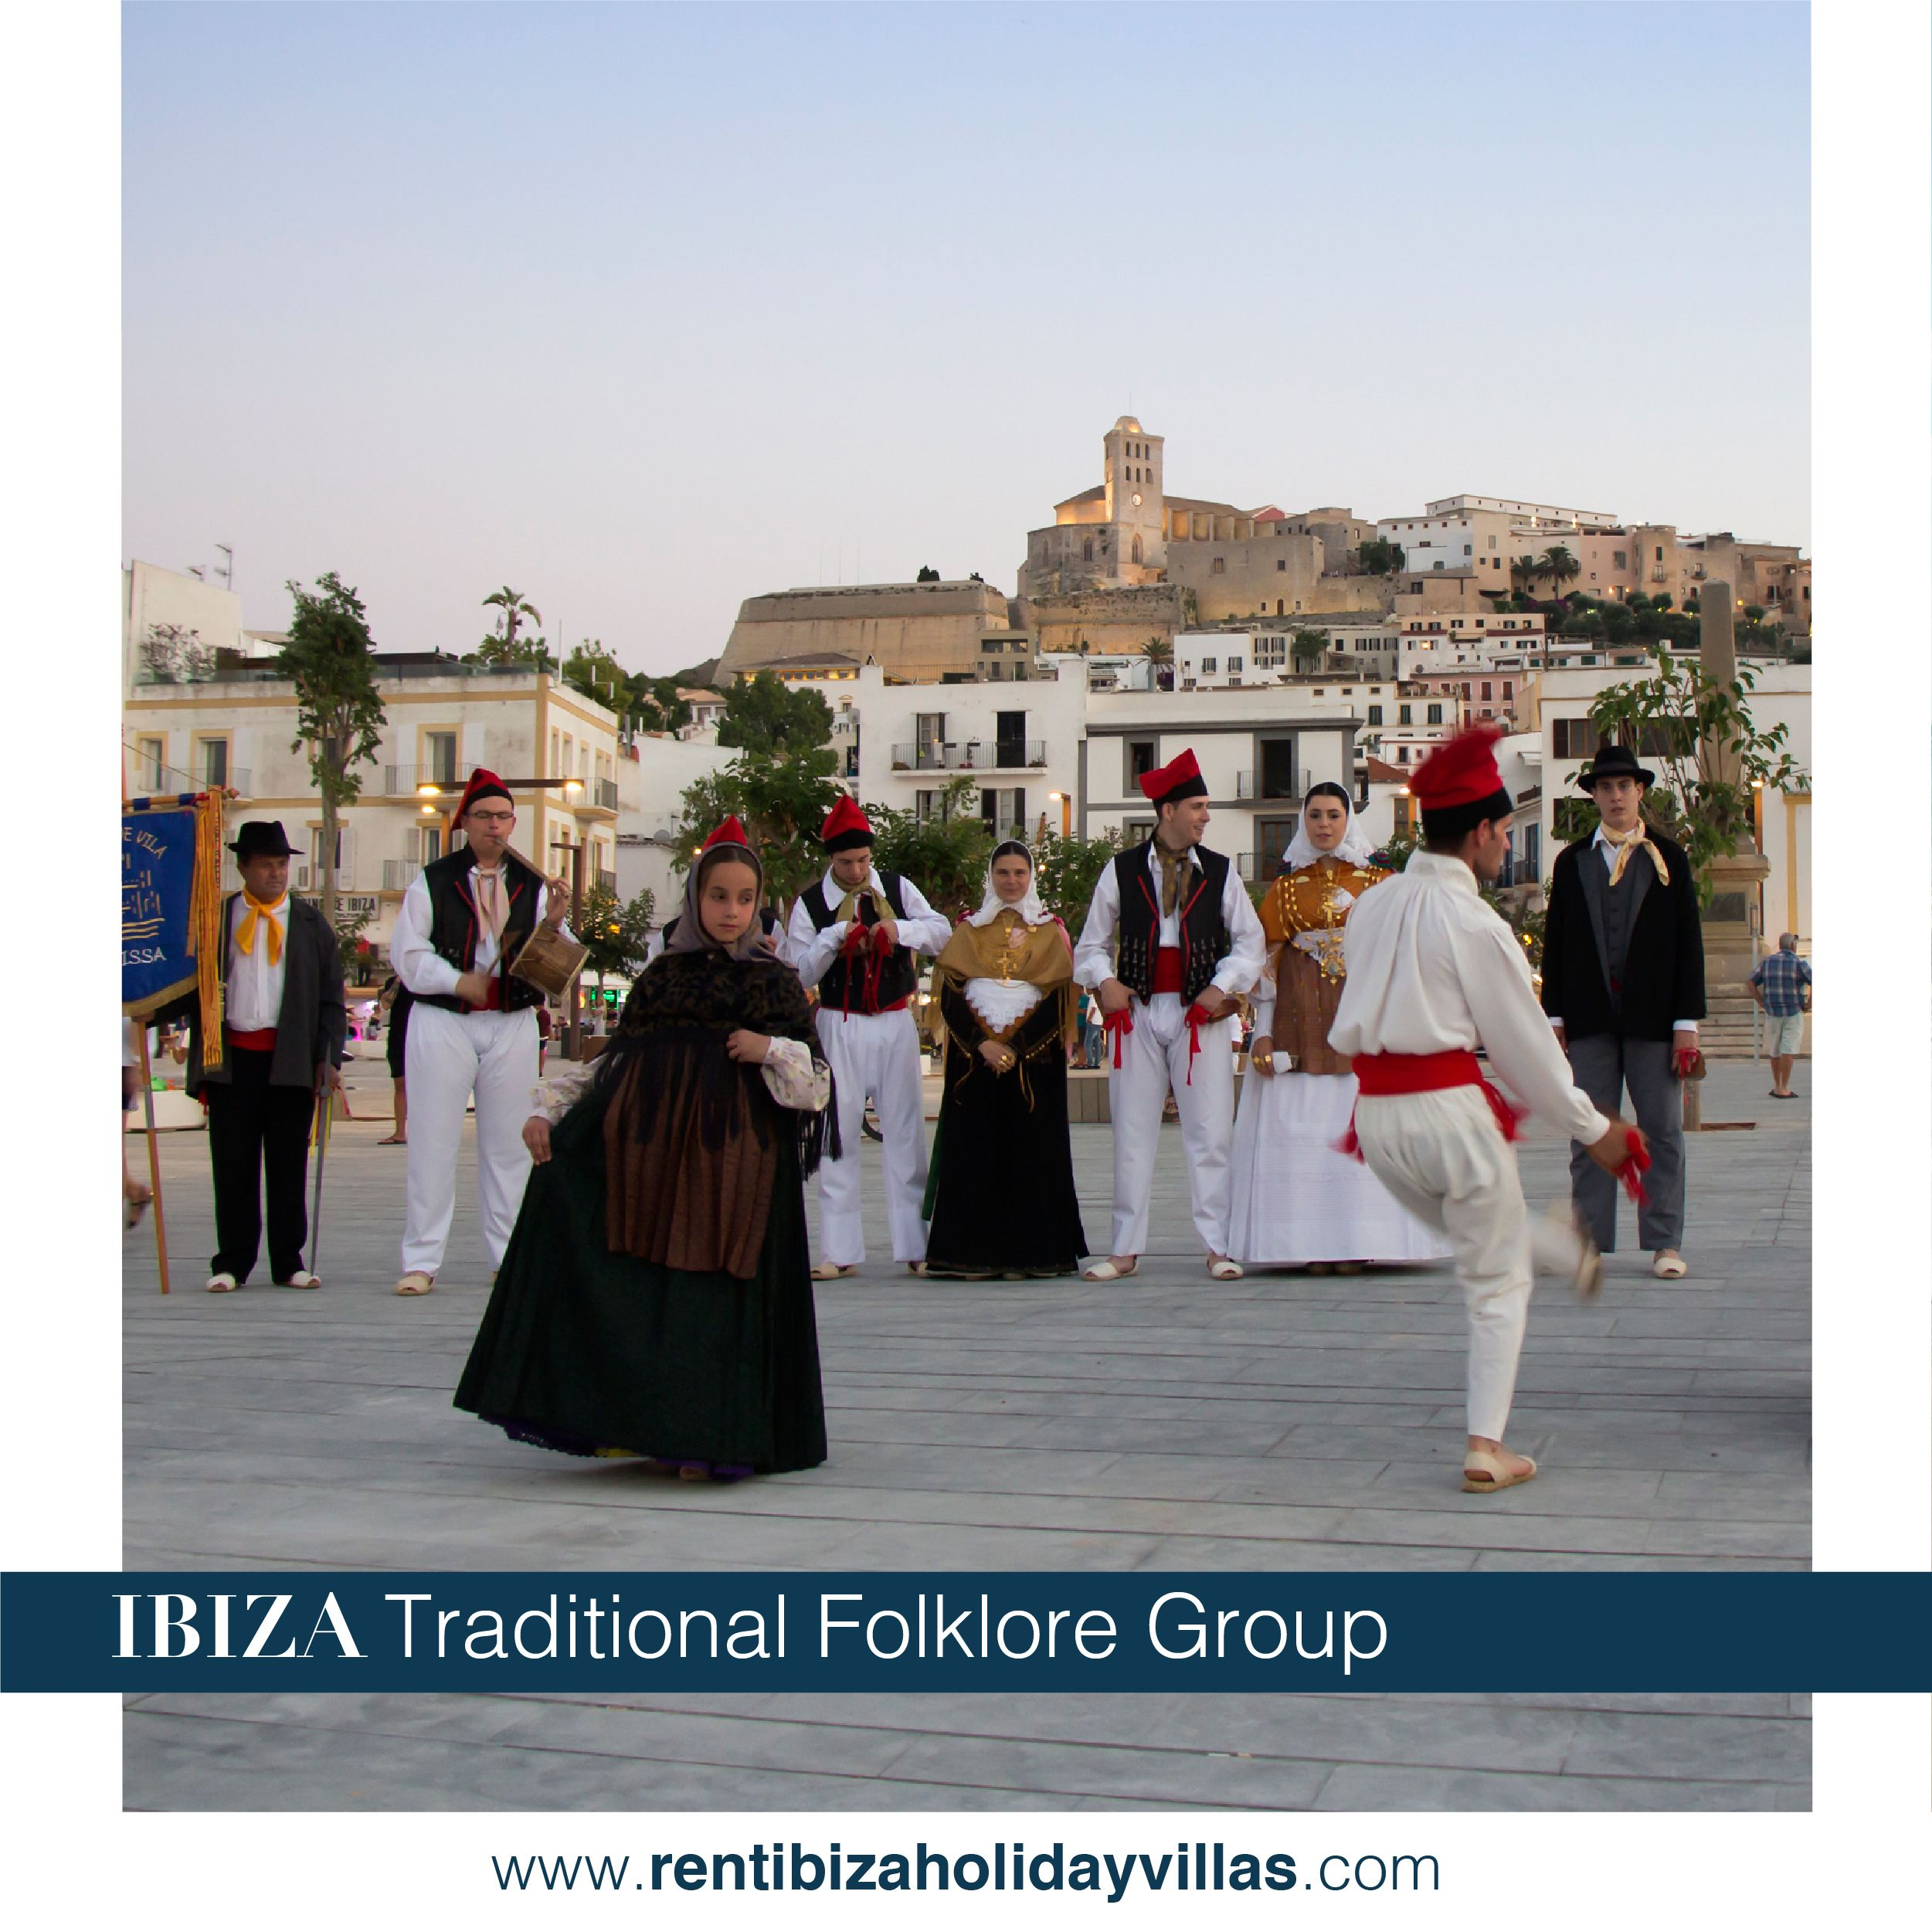 Baile Payes Is The Tradicional Dance Of Ibiza From Unknown